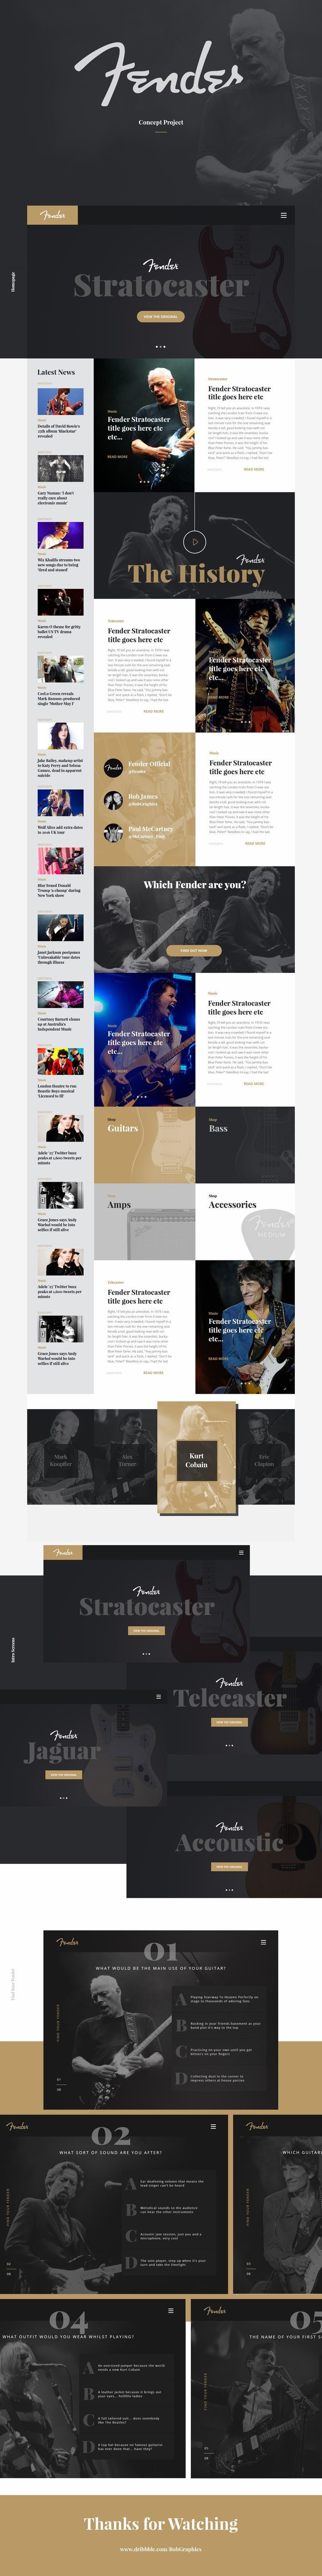 Fender Concept Page by Rob James - #webdesign #inspiration